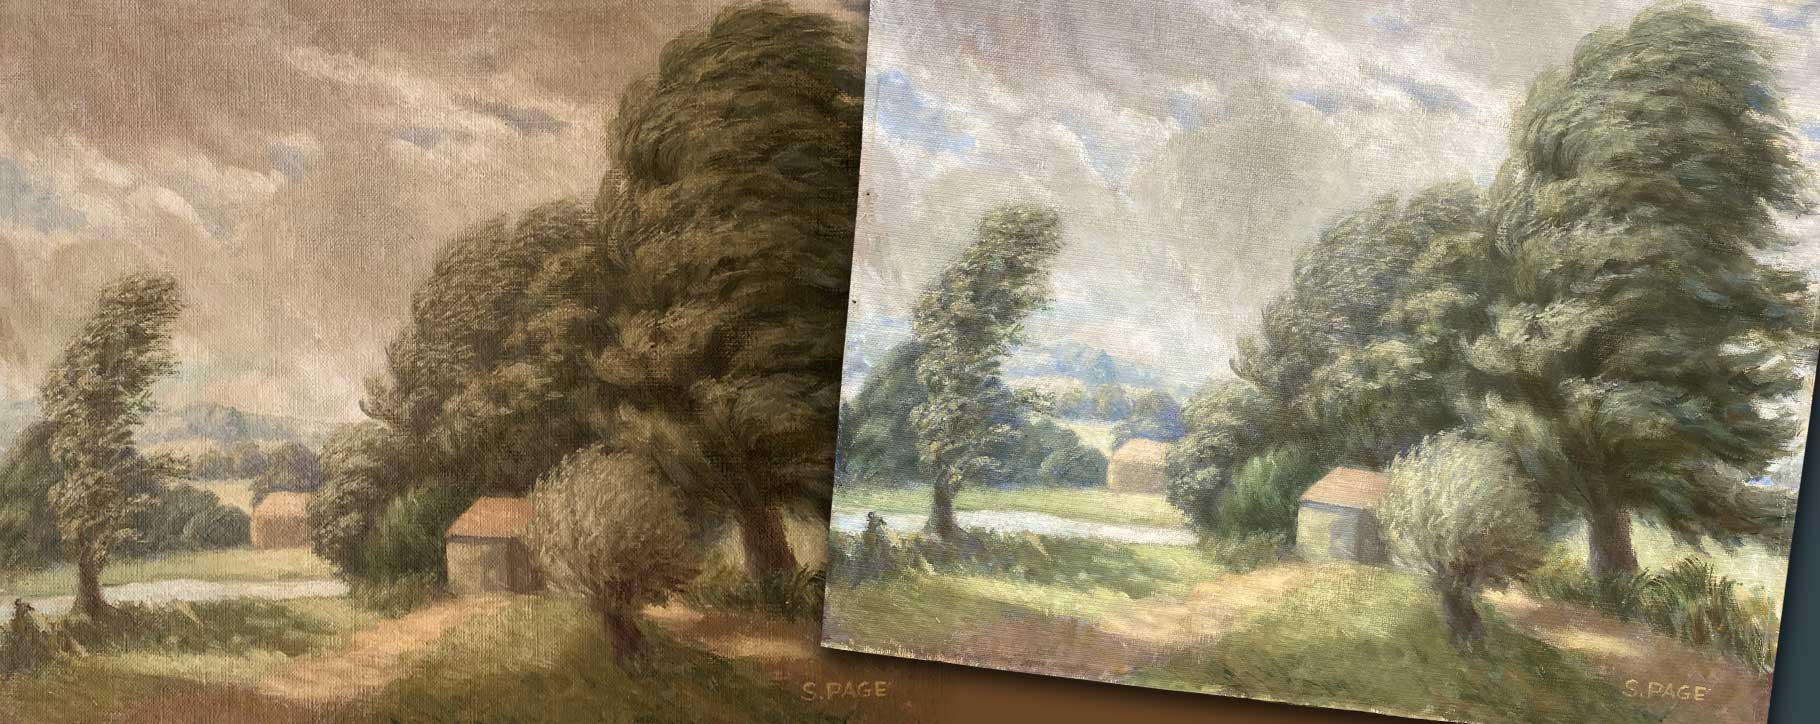 oil on panel before and after restoration - protecting paintings on panel